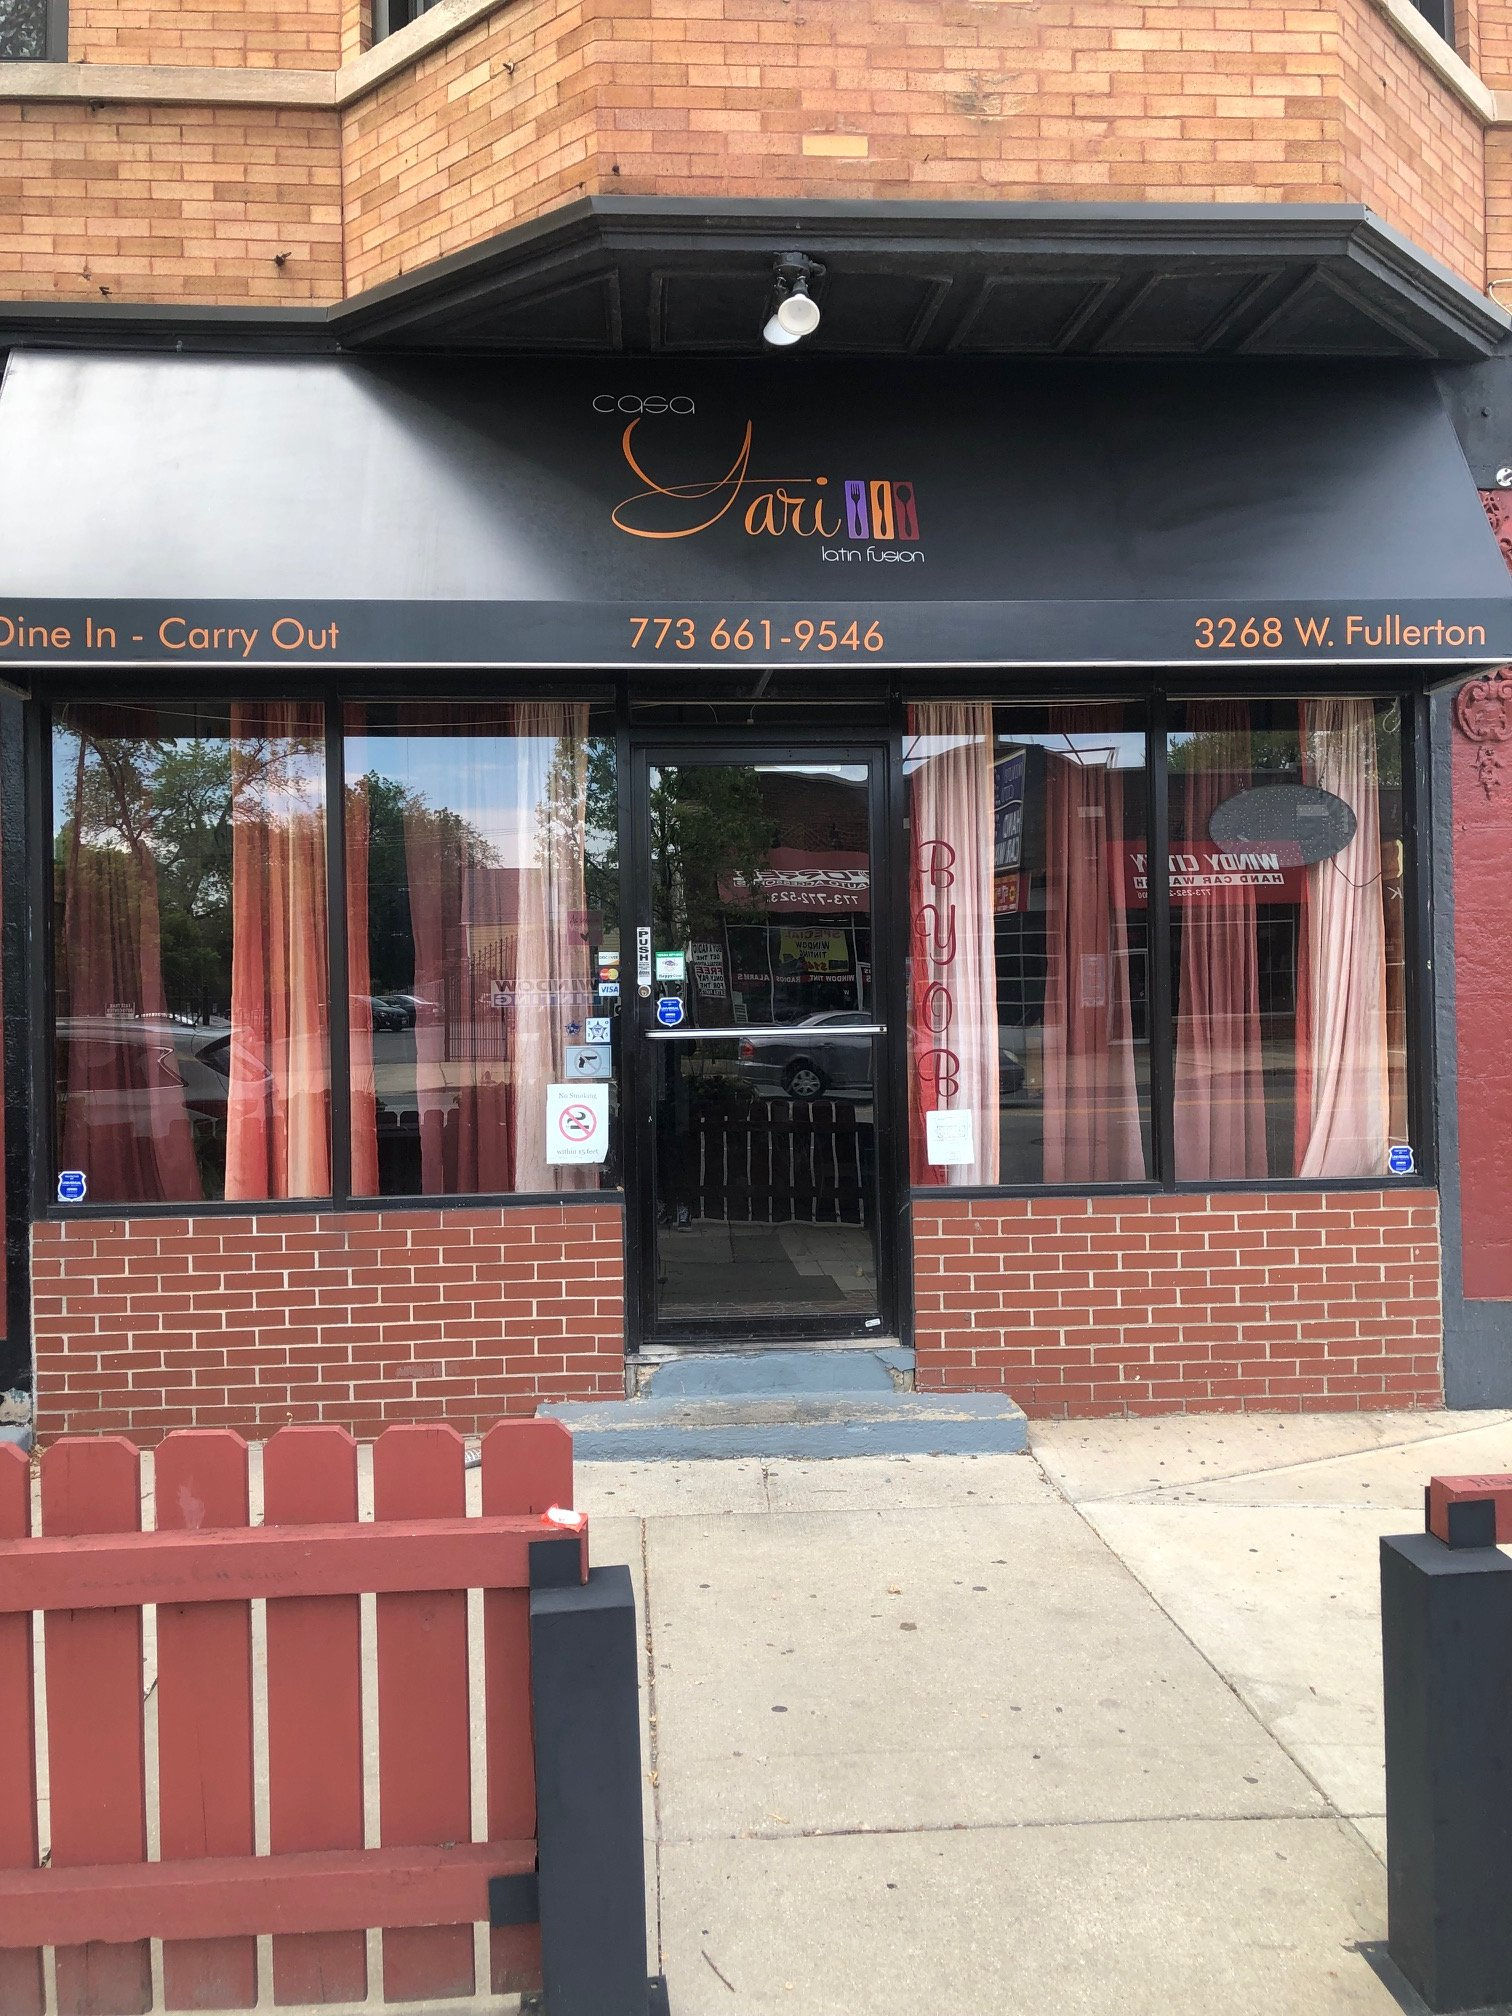 The front entrance of Casa Yari at 3268 W Fullerton Avenue, Chicago, IL 60647. The vibrant red entry invites customers in for dine in or carry out options. Noted on the windows is the BYOB option for the restaurant.